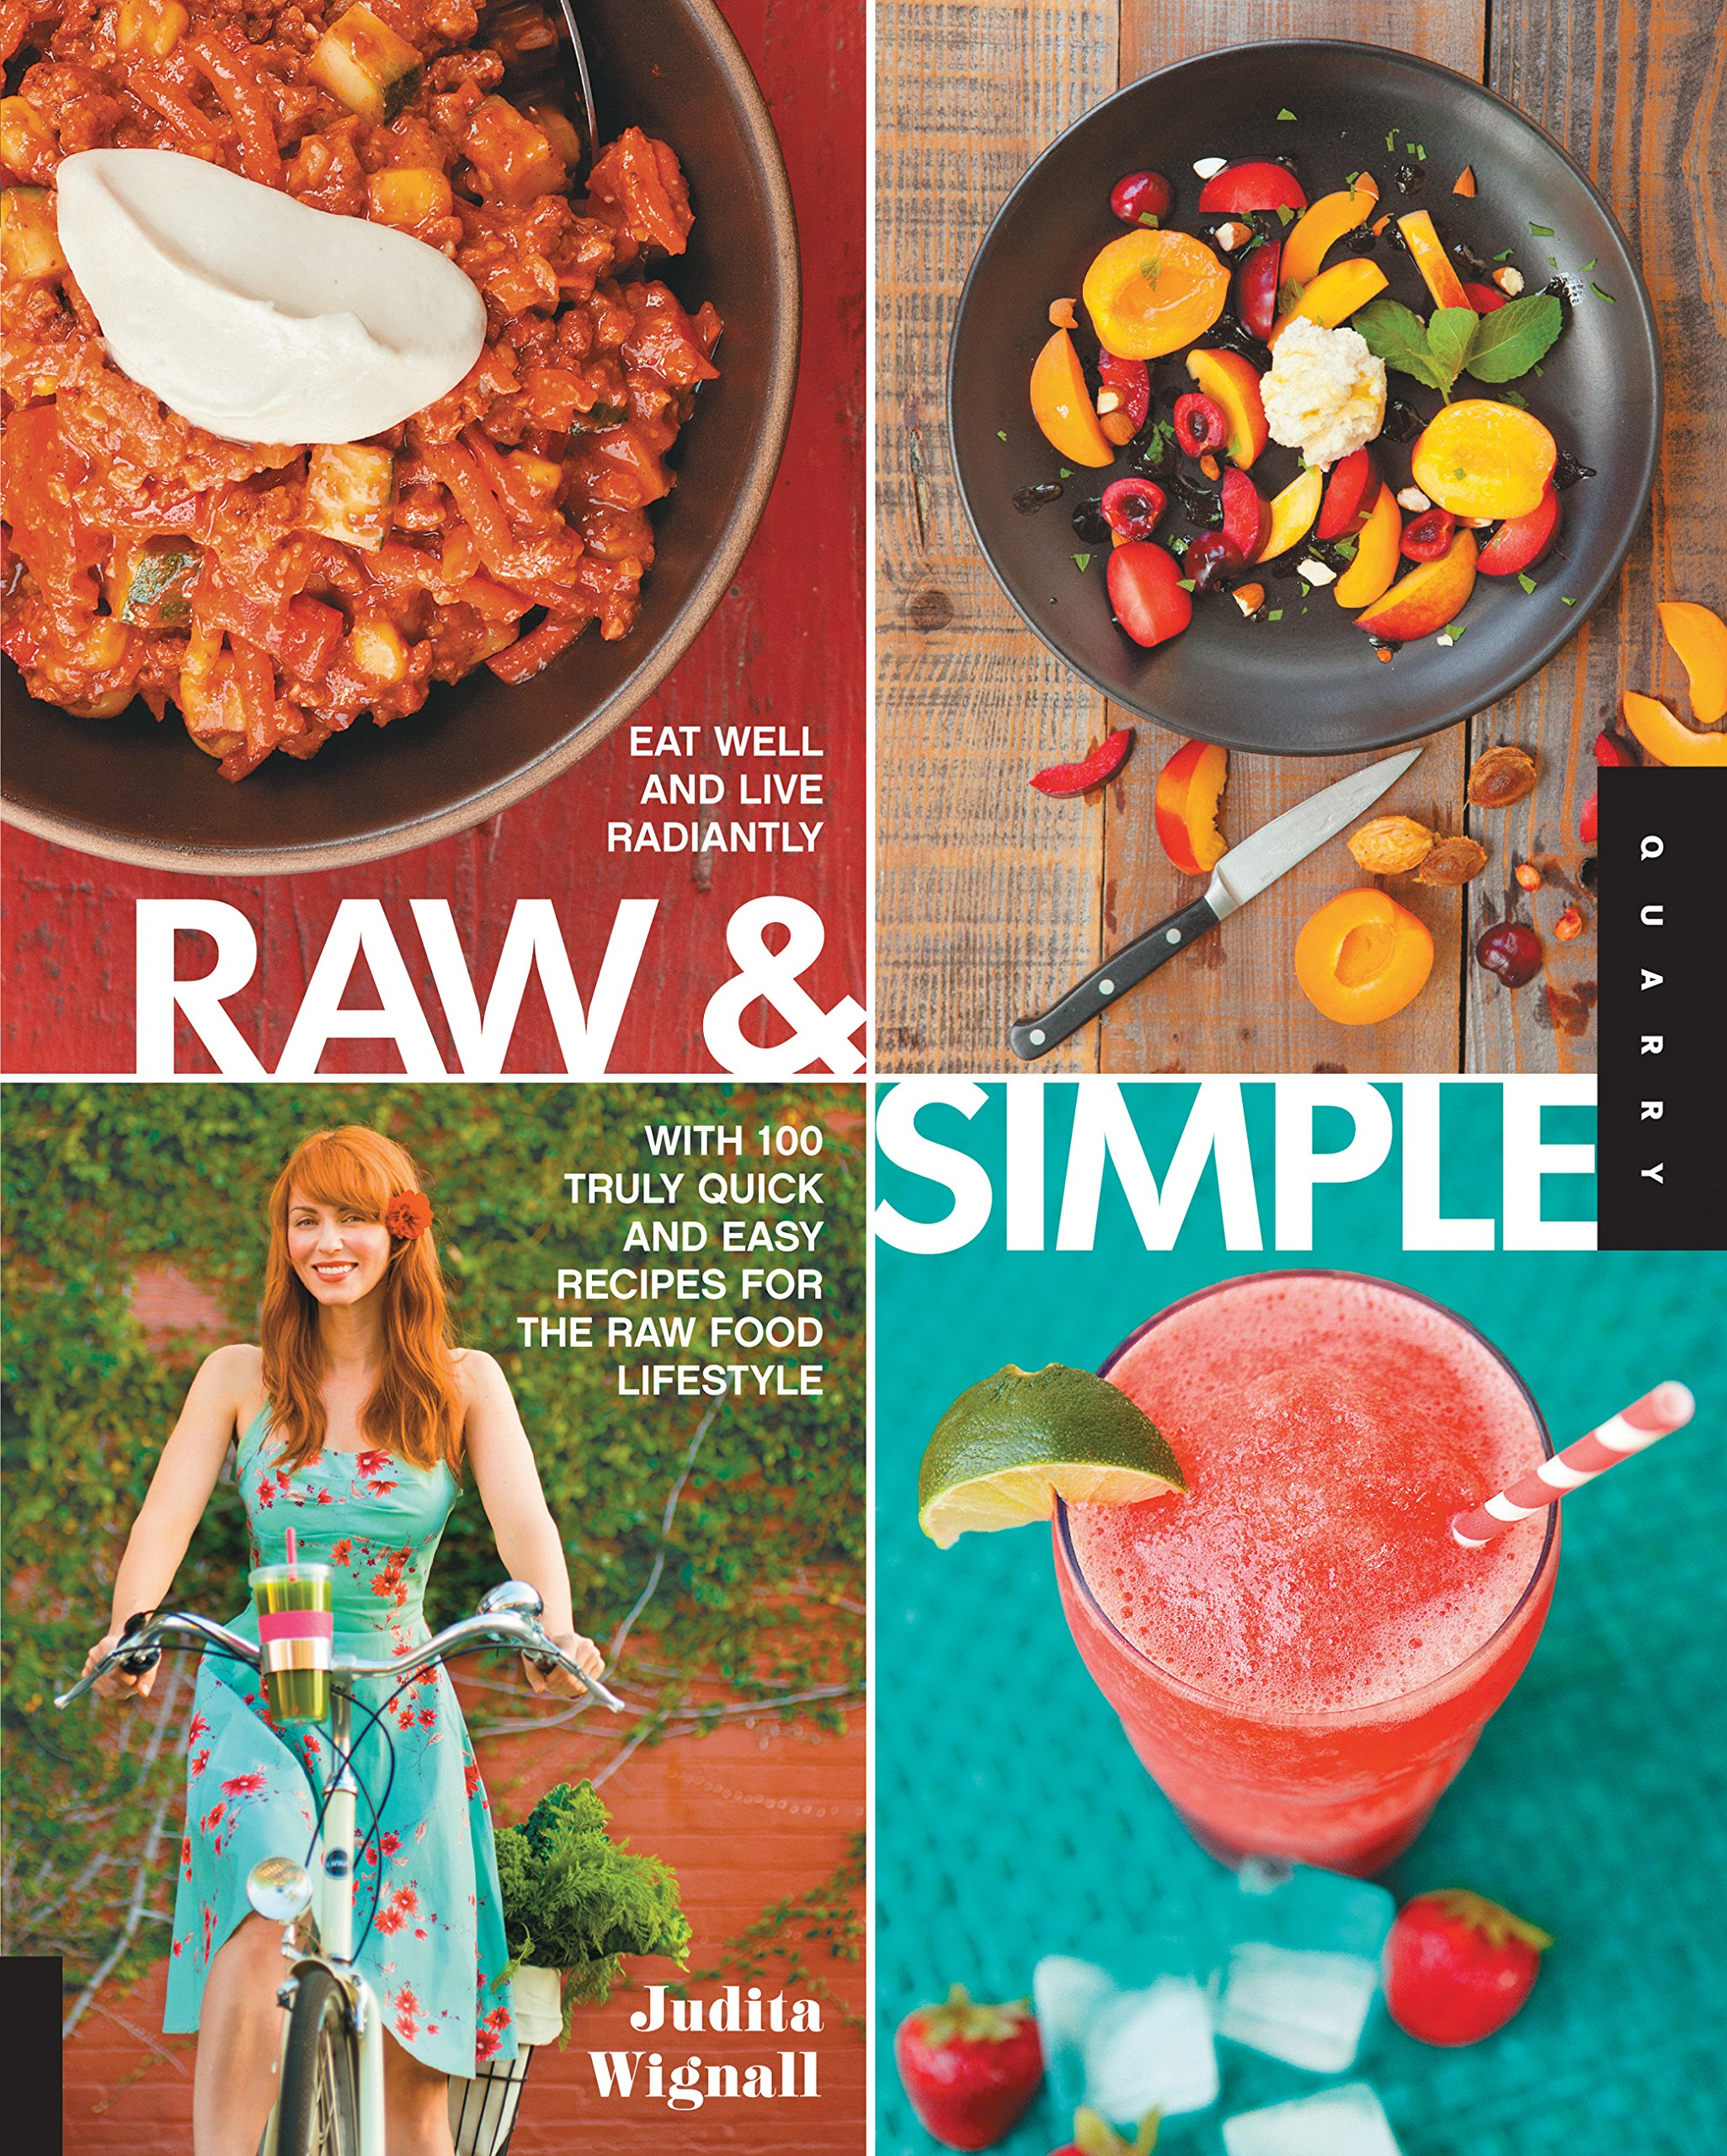 Raw and simple eat well and live radiantly with 100 truly quick and raw and simple eat well and live radiantly with 100 truly quick and easy recipes for the raw food lifestyle judita wignall 8601400987247 amazon forumfinder Image collections